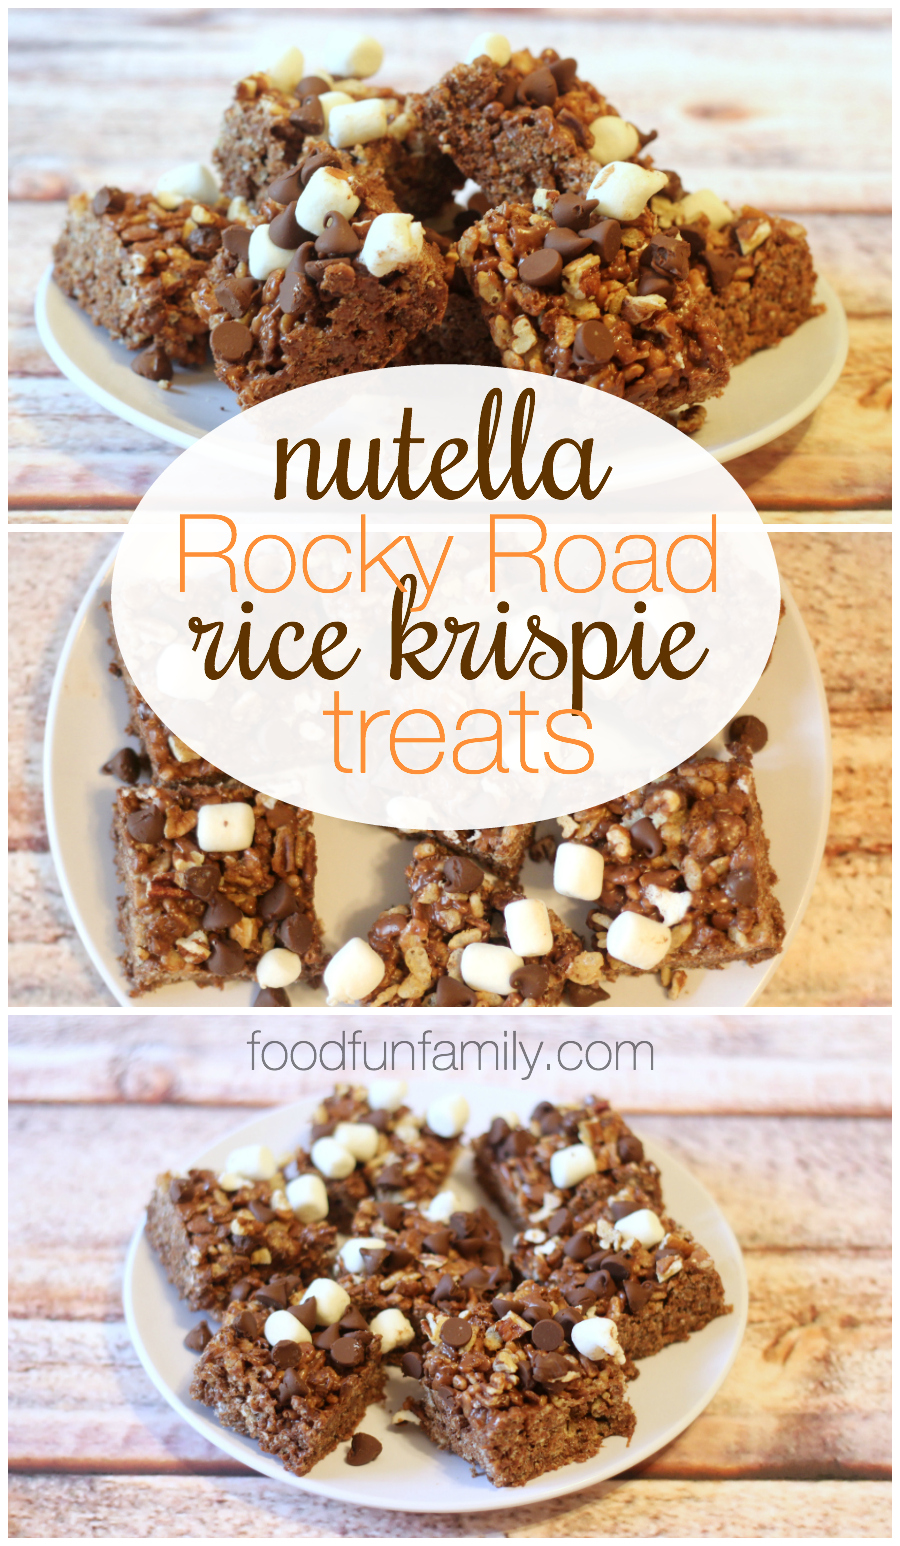 This recipe for Nutella rocky road rice krispie treats tastes so rich ...